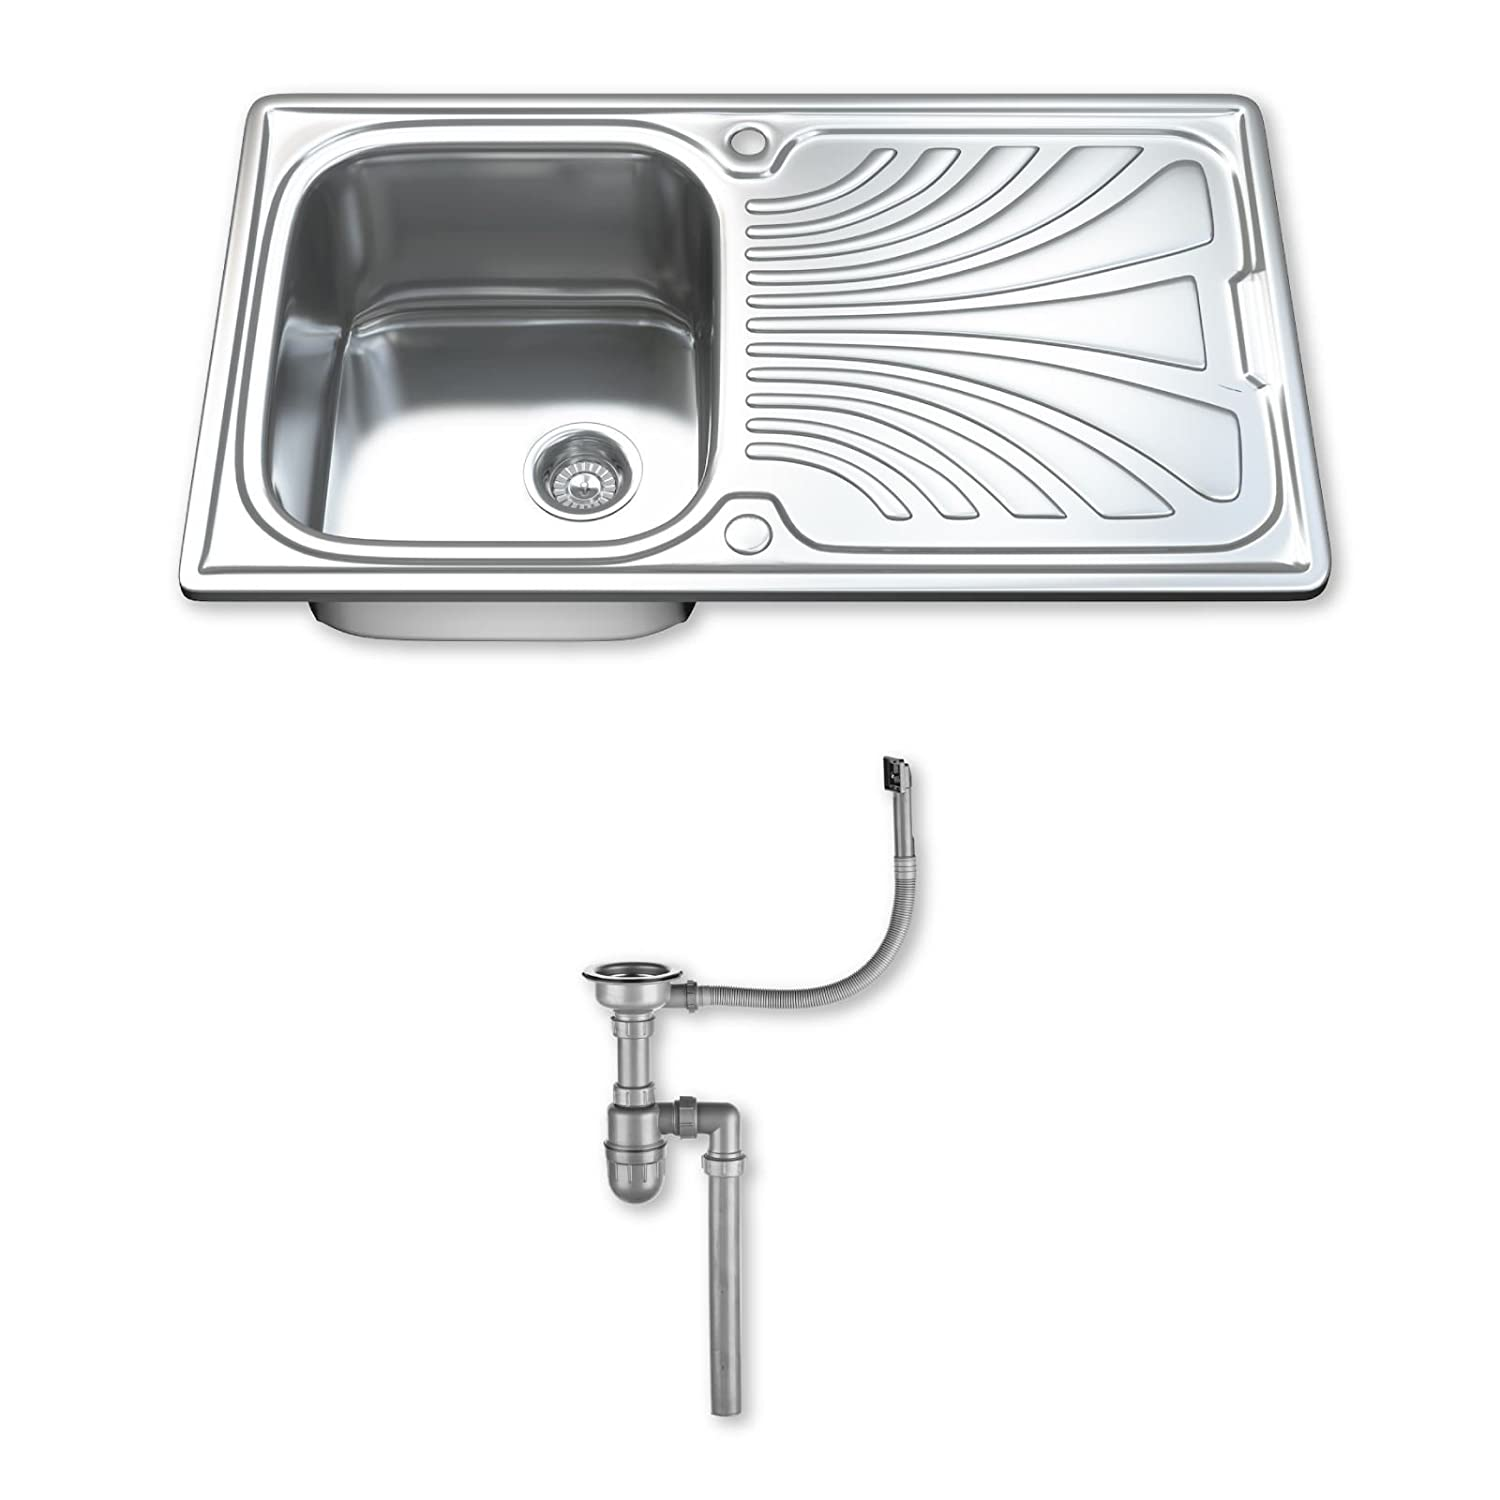 Dihl 1.0 Single Bowl Stainless Steel Kitchen Sink with Drainer ...